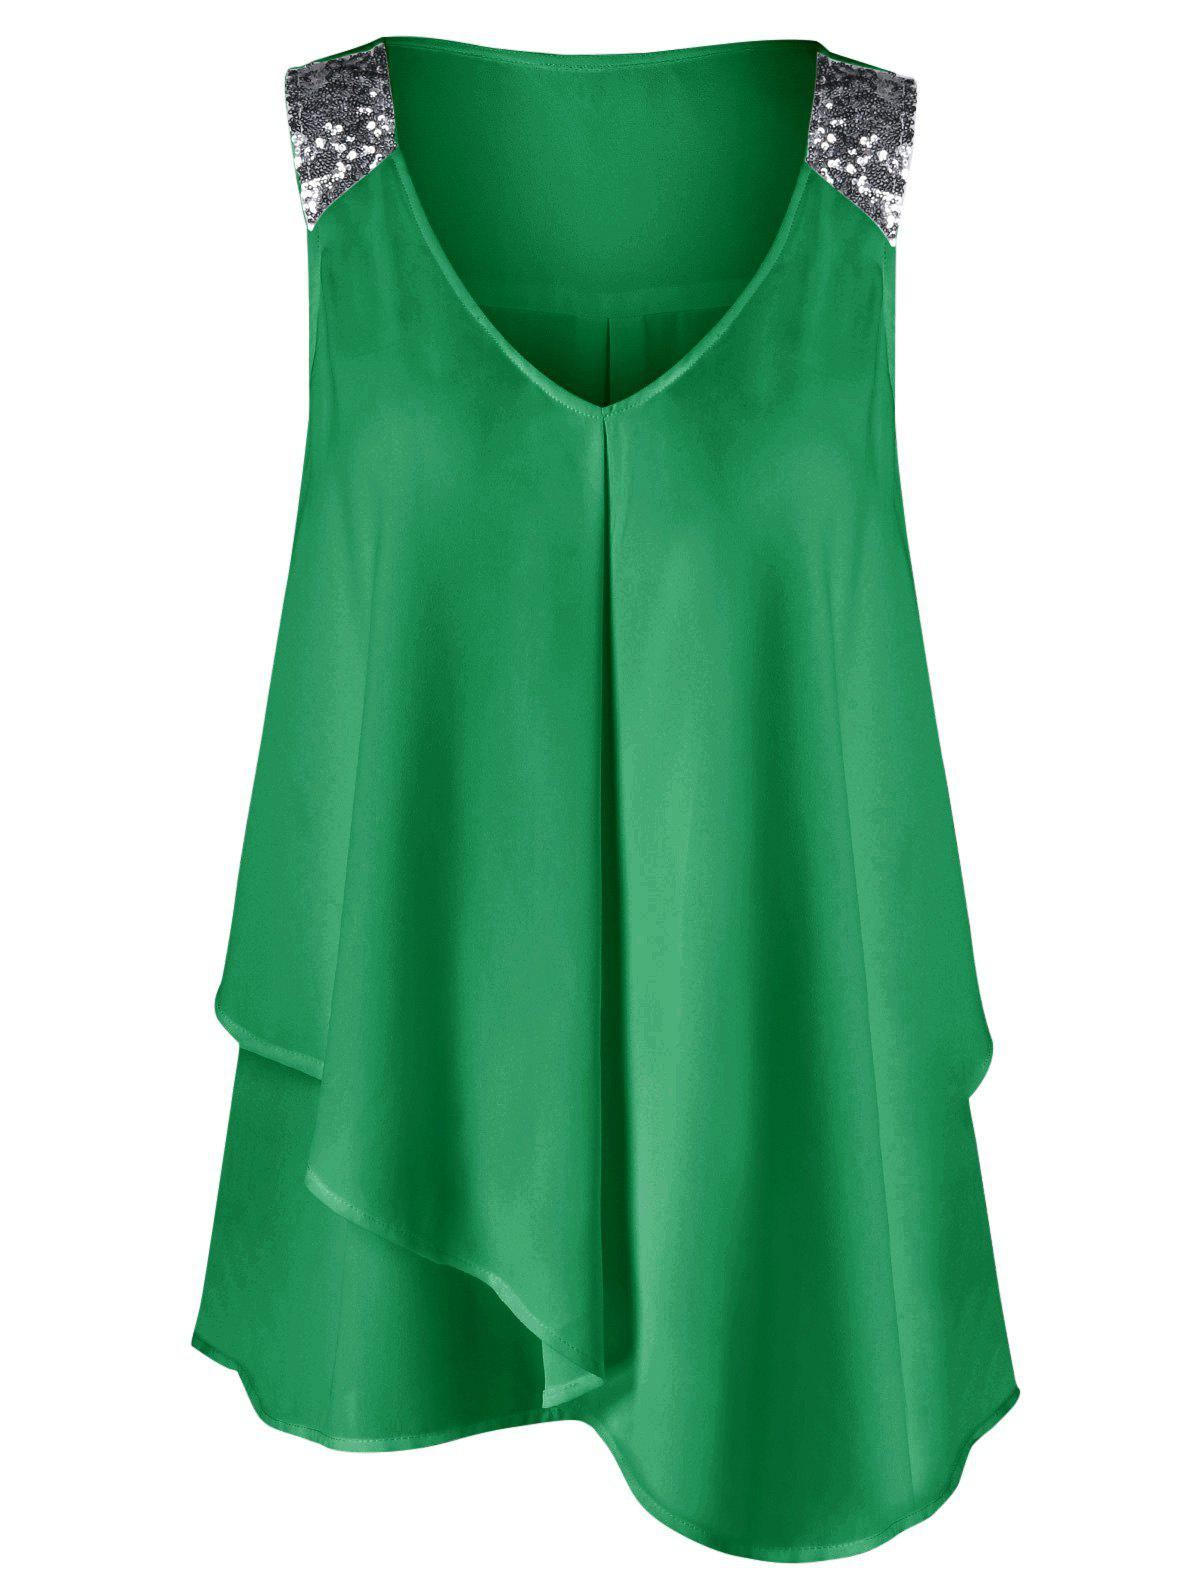 Plus Size Sequined Sleeveless Shoulder Overlap BlouseWOMEN<br><br>Size: 2XL; Color: GRASS GREEN; Material: Polyester; Shirt Length: Long; Sleeve Length: Sleeveless; Collar: V-Neck; Style: Fashion; Season: Summer; Pattern Type: Others; Weight: 0.2200kg; Package Contents: 1 x Blouse;